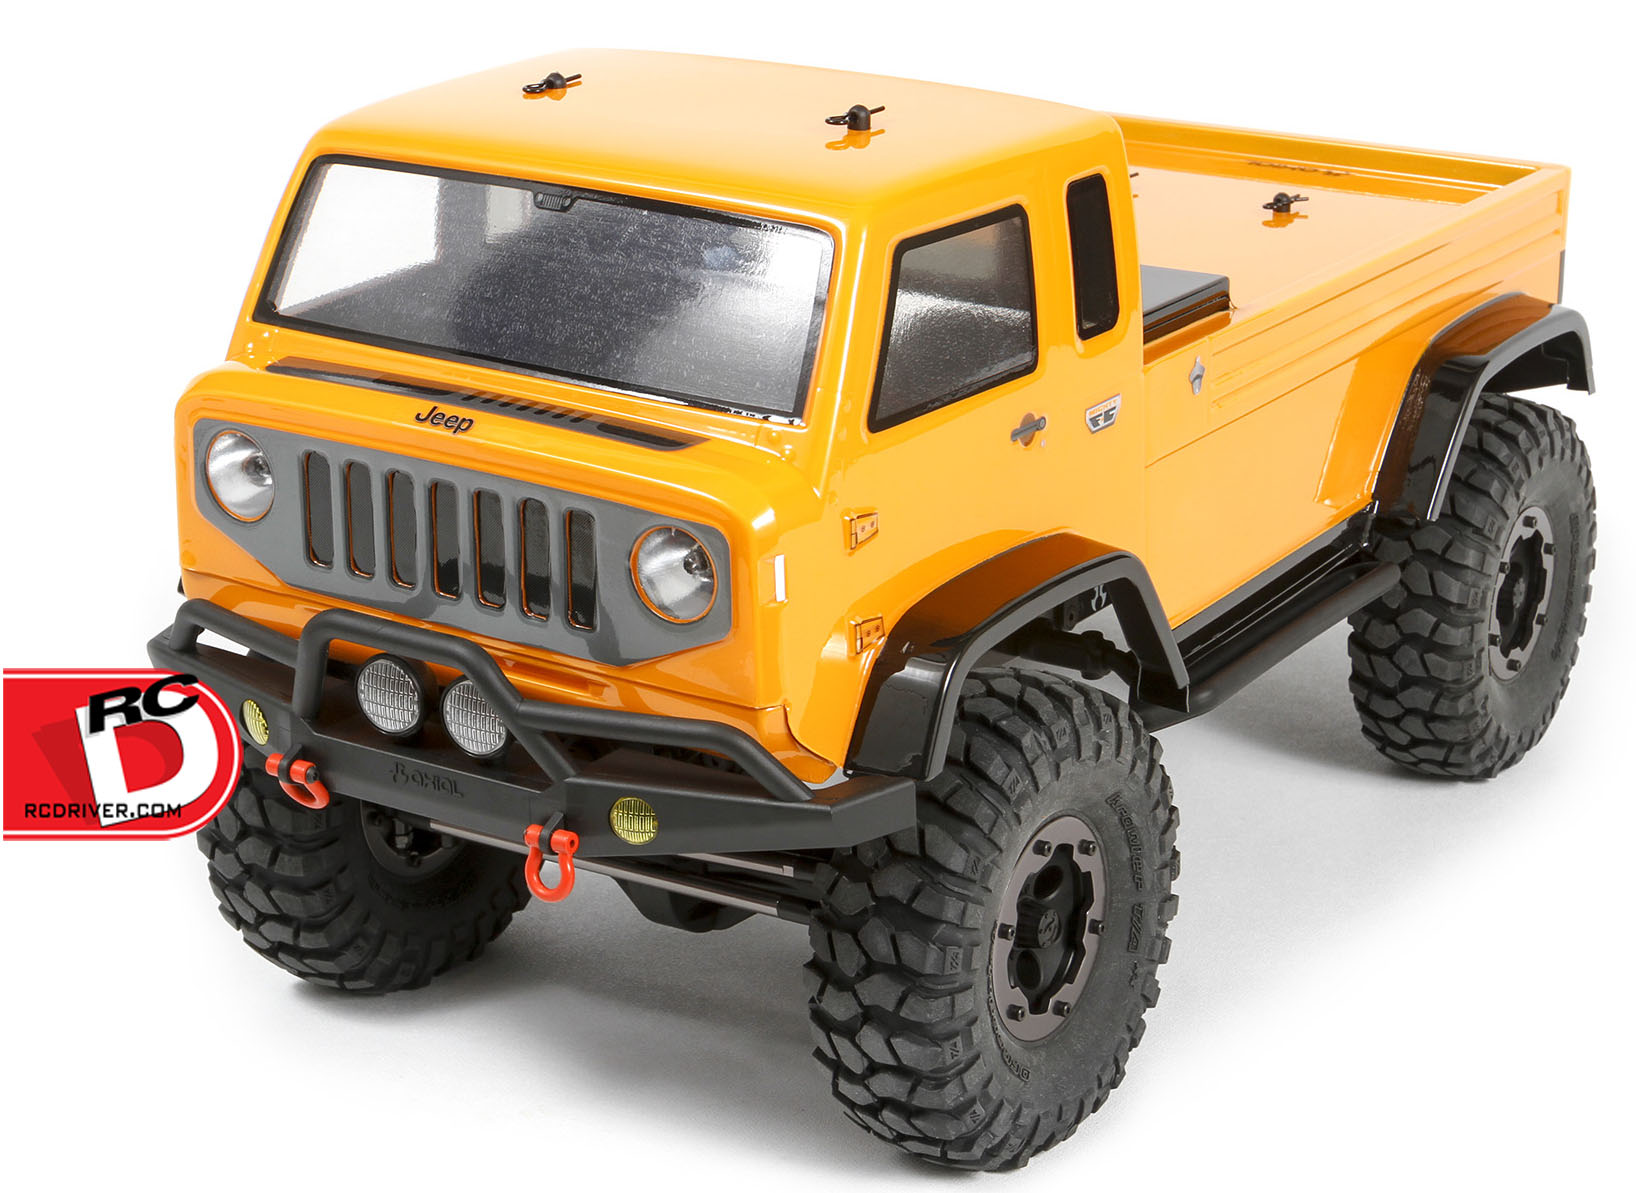 Axial - Jeep Mighty FC Clear Body copy